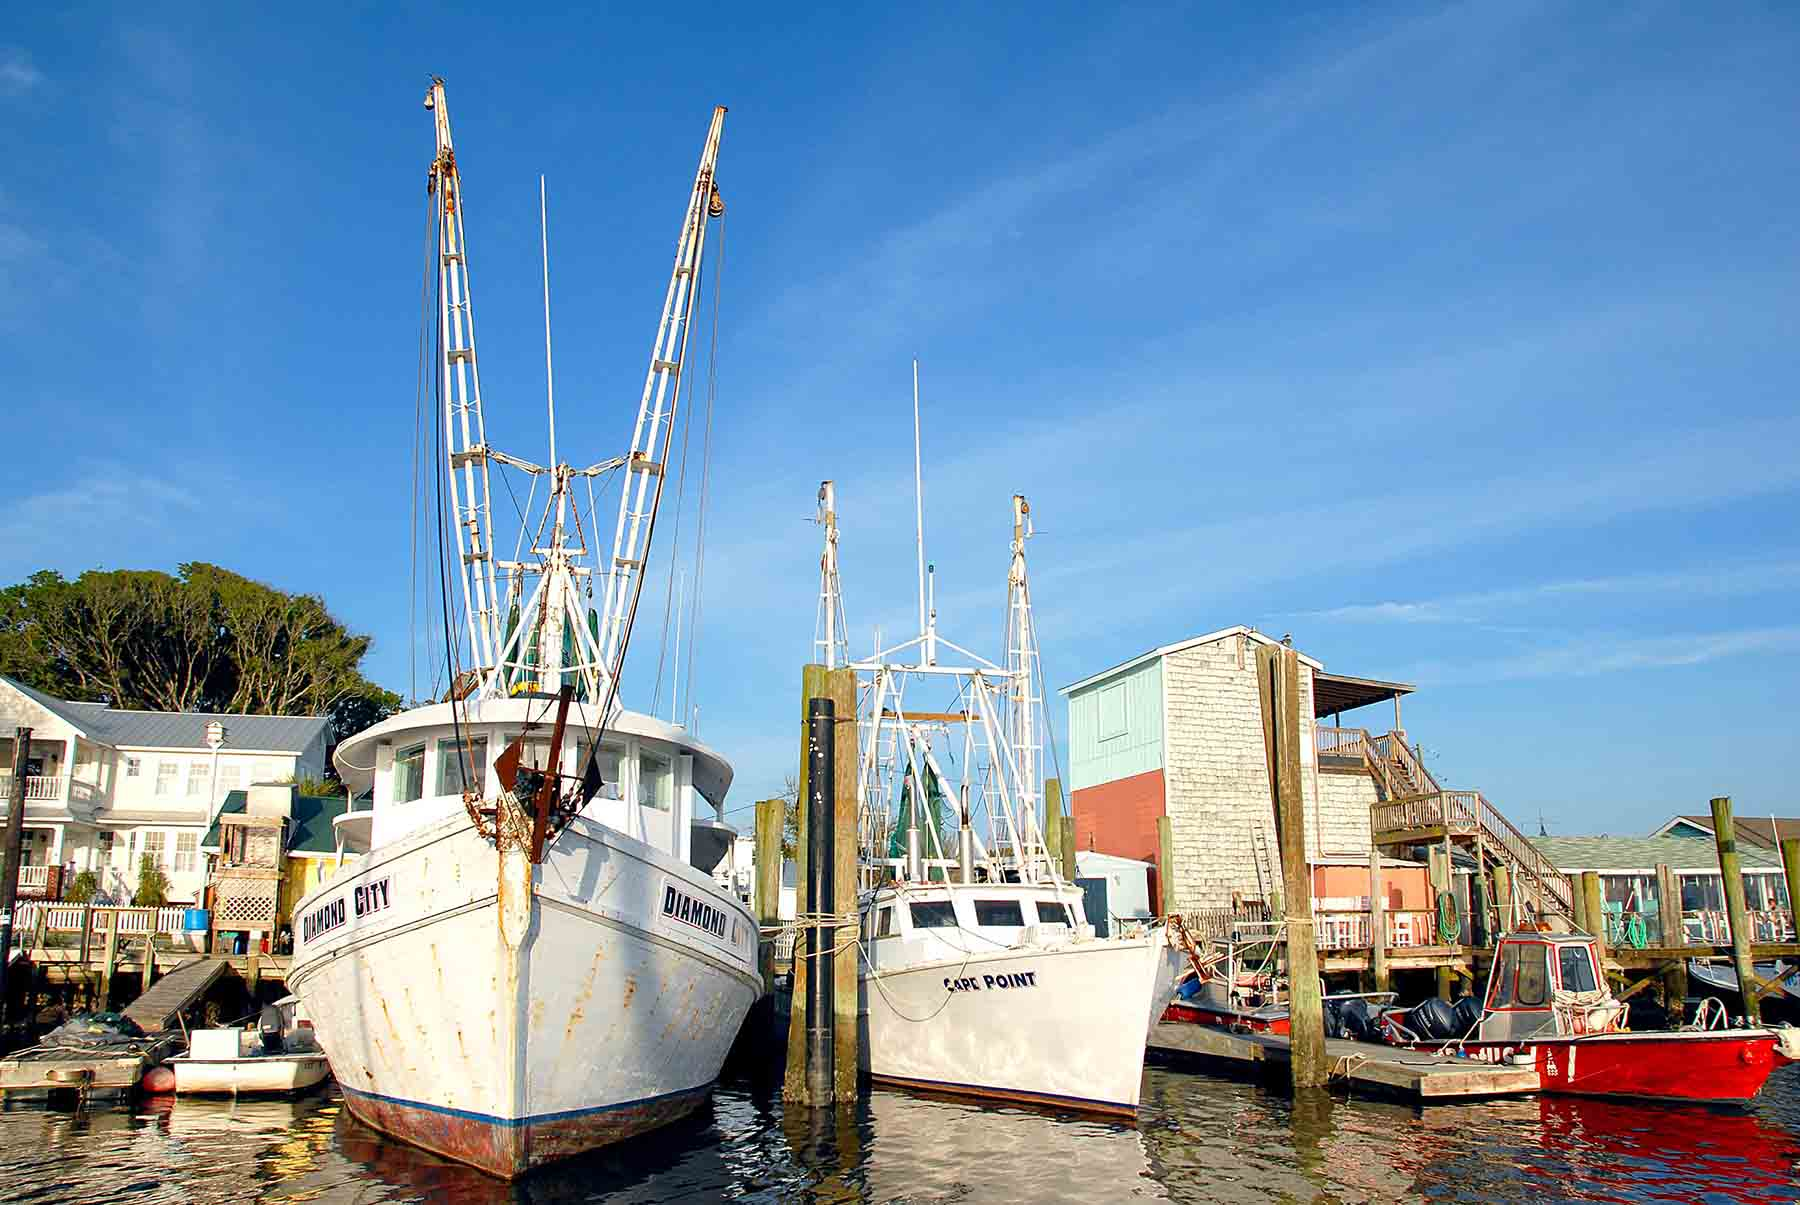 Shrimp fishing boats in Southport, NC